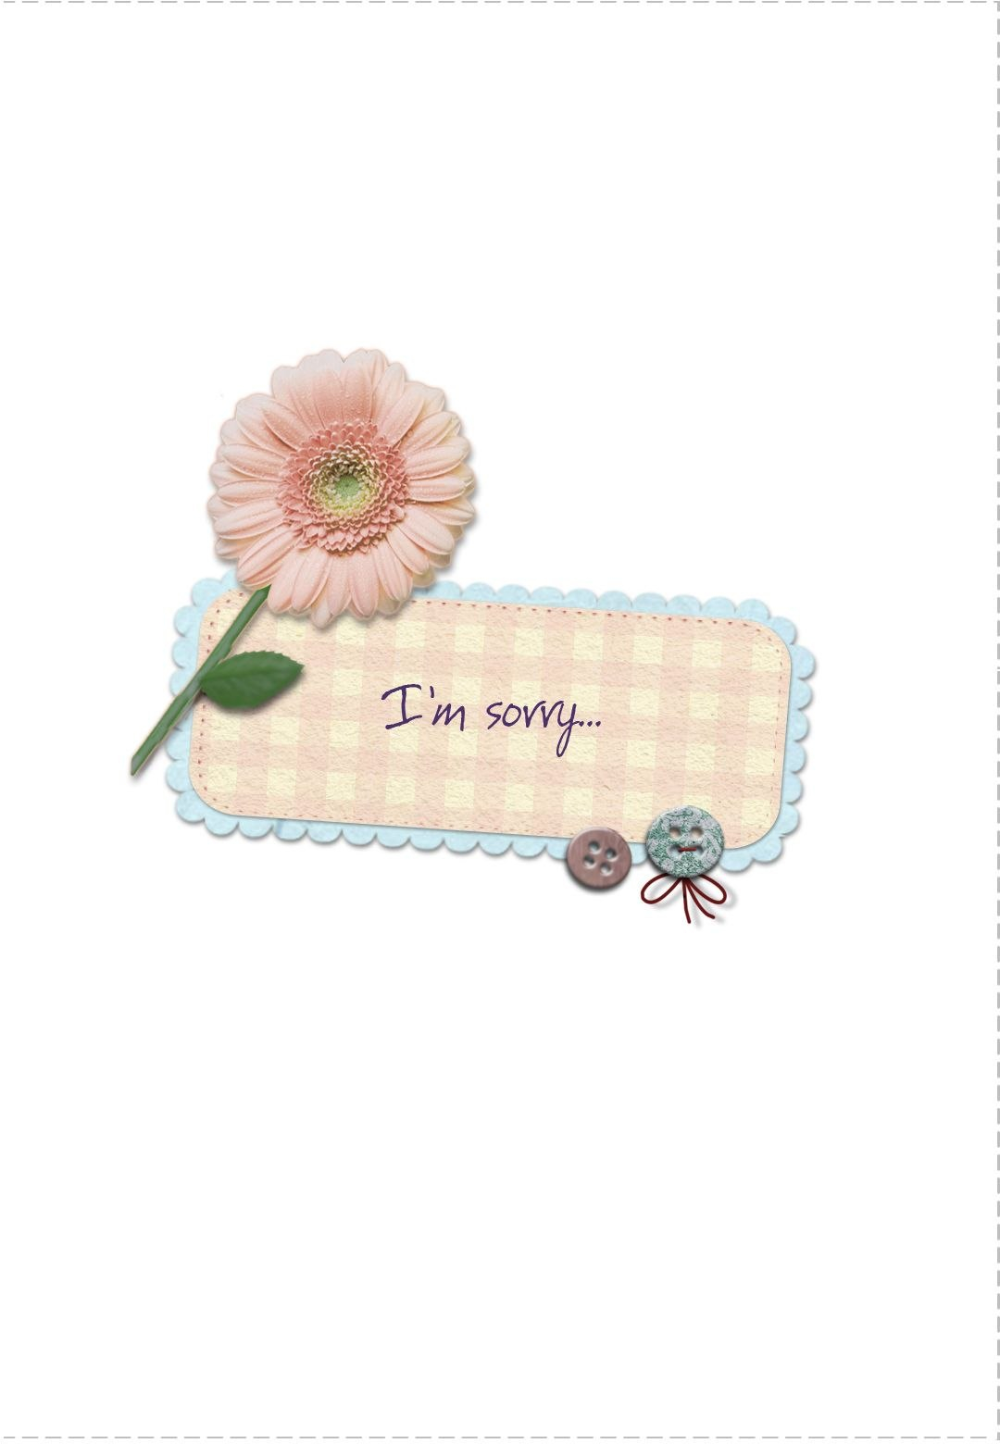 Apology Card Free Printable I M Sorry Apology Cards Sorry Cards Inside Sorry Card Template 10 Professional Sorry Cards Apology Cards Thank You Card Template